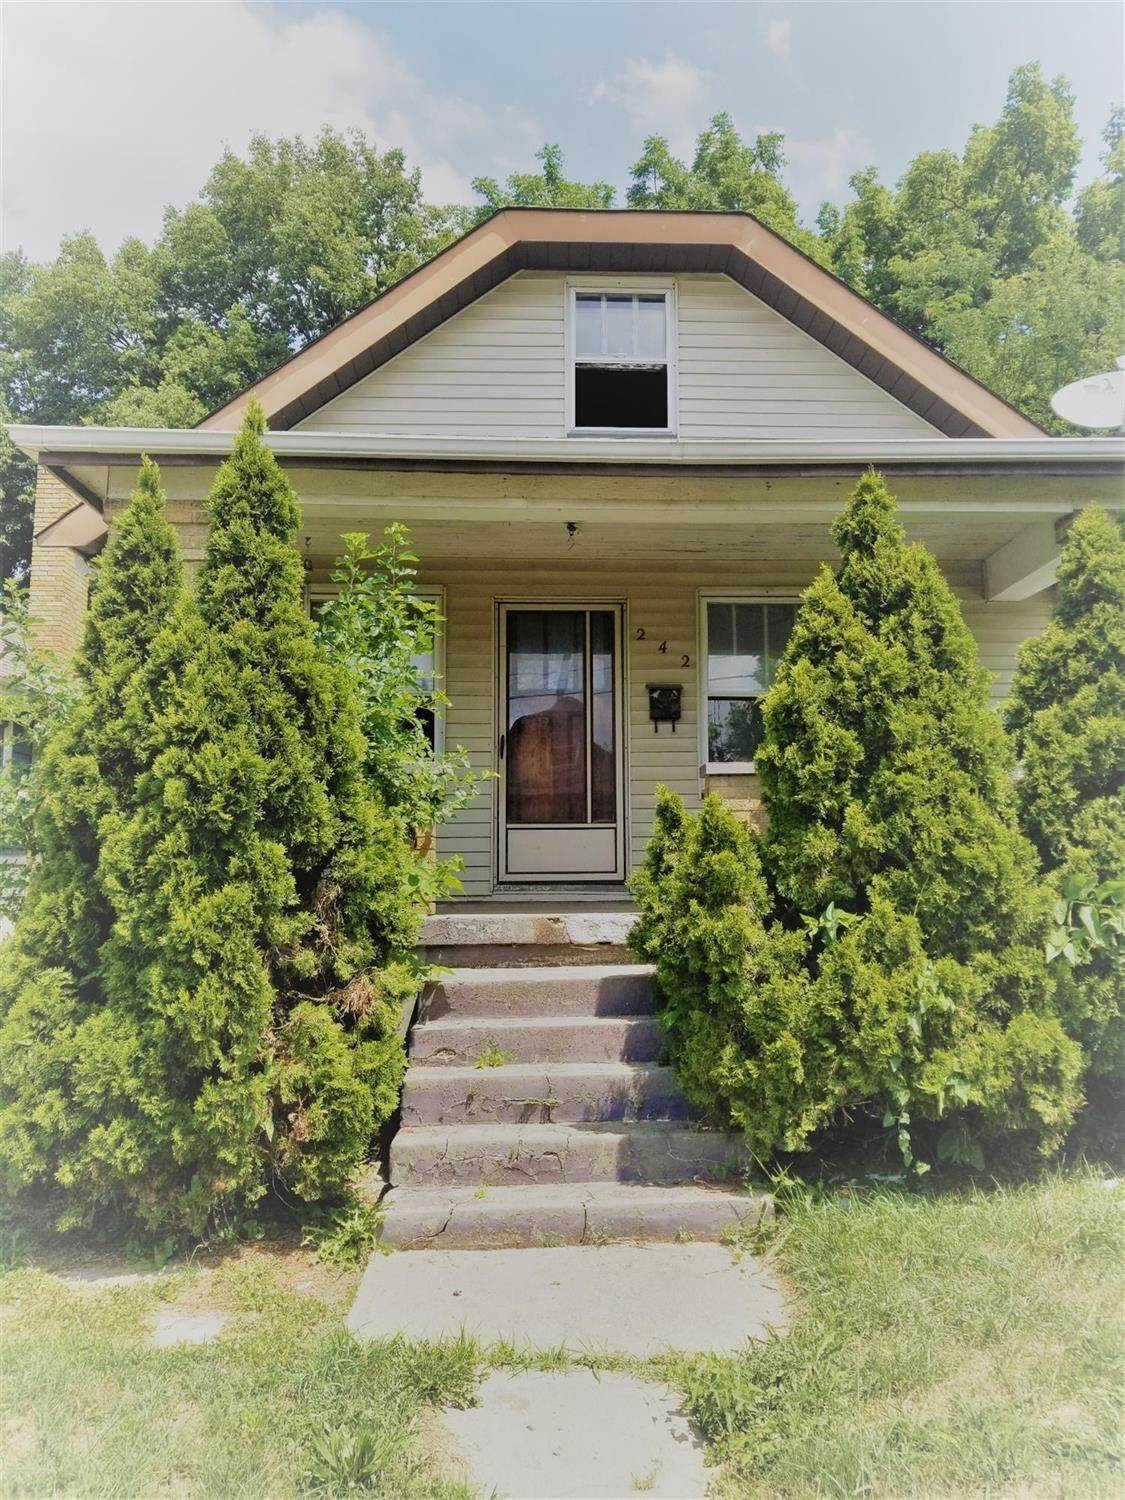 Single Family Homes for Sale at 242 W Seventy Third Street Cincinnati, Ohio 45216 United States